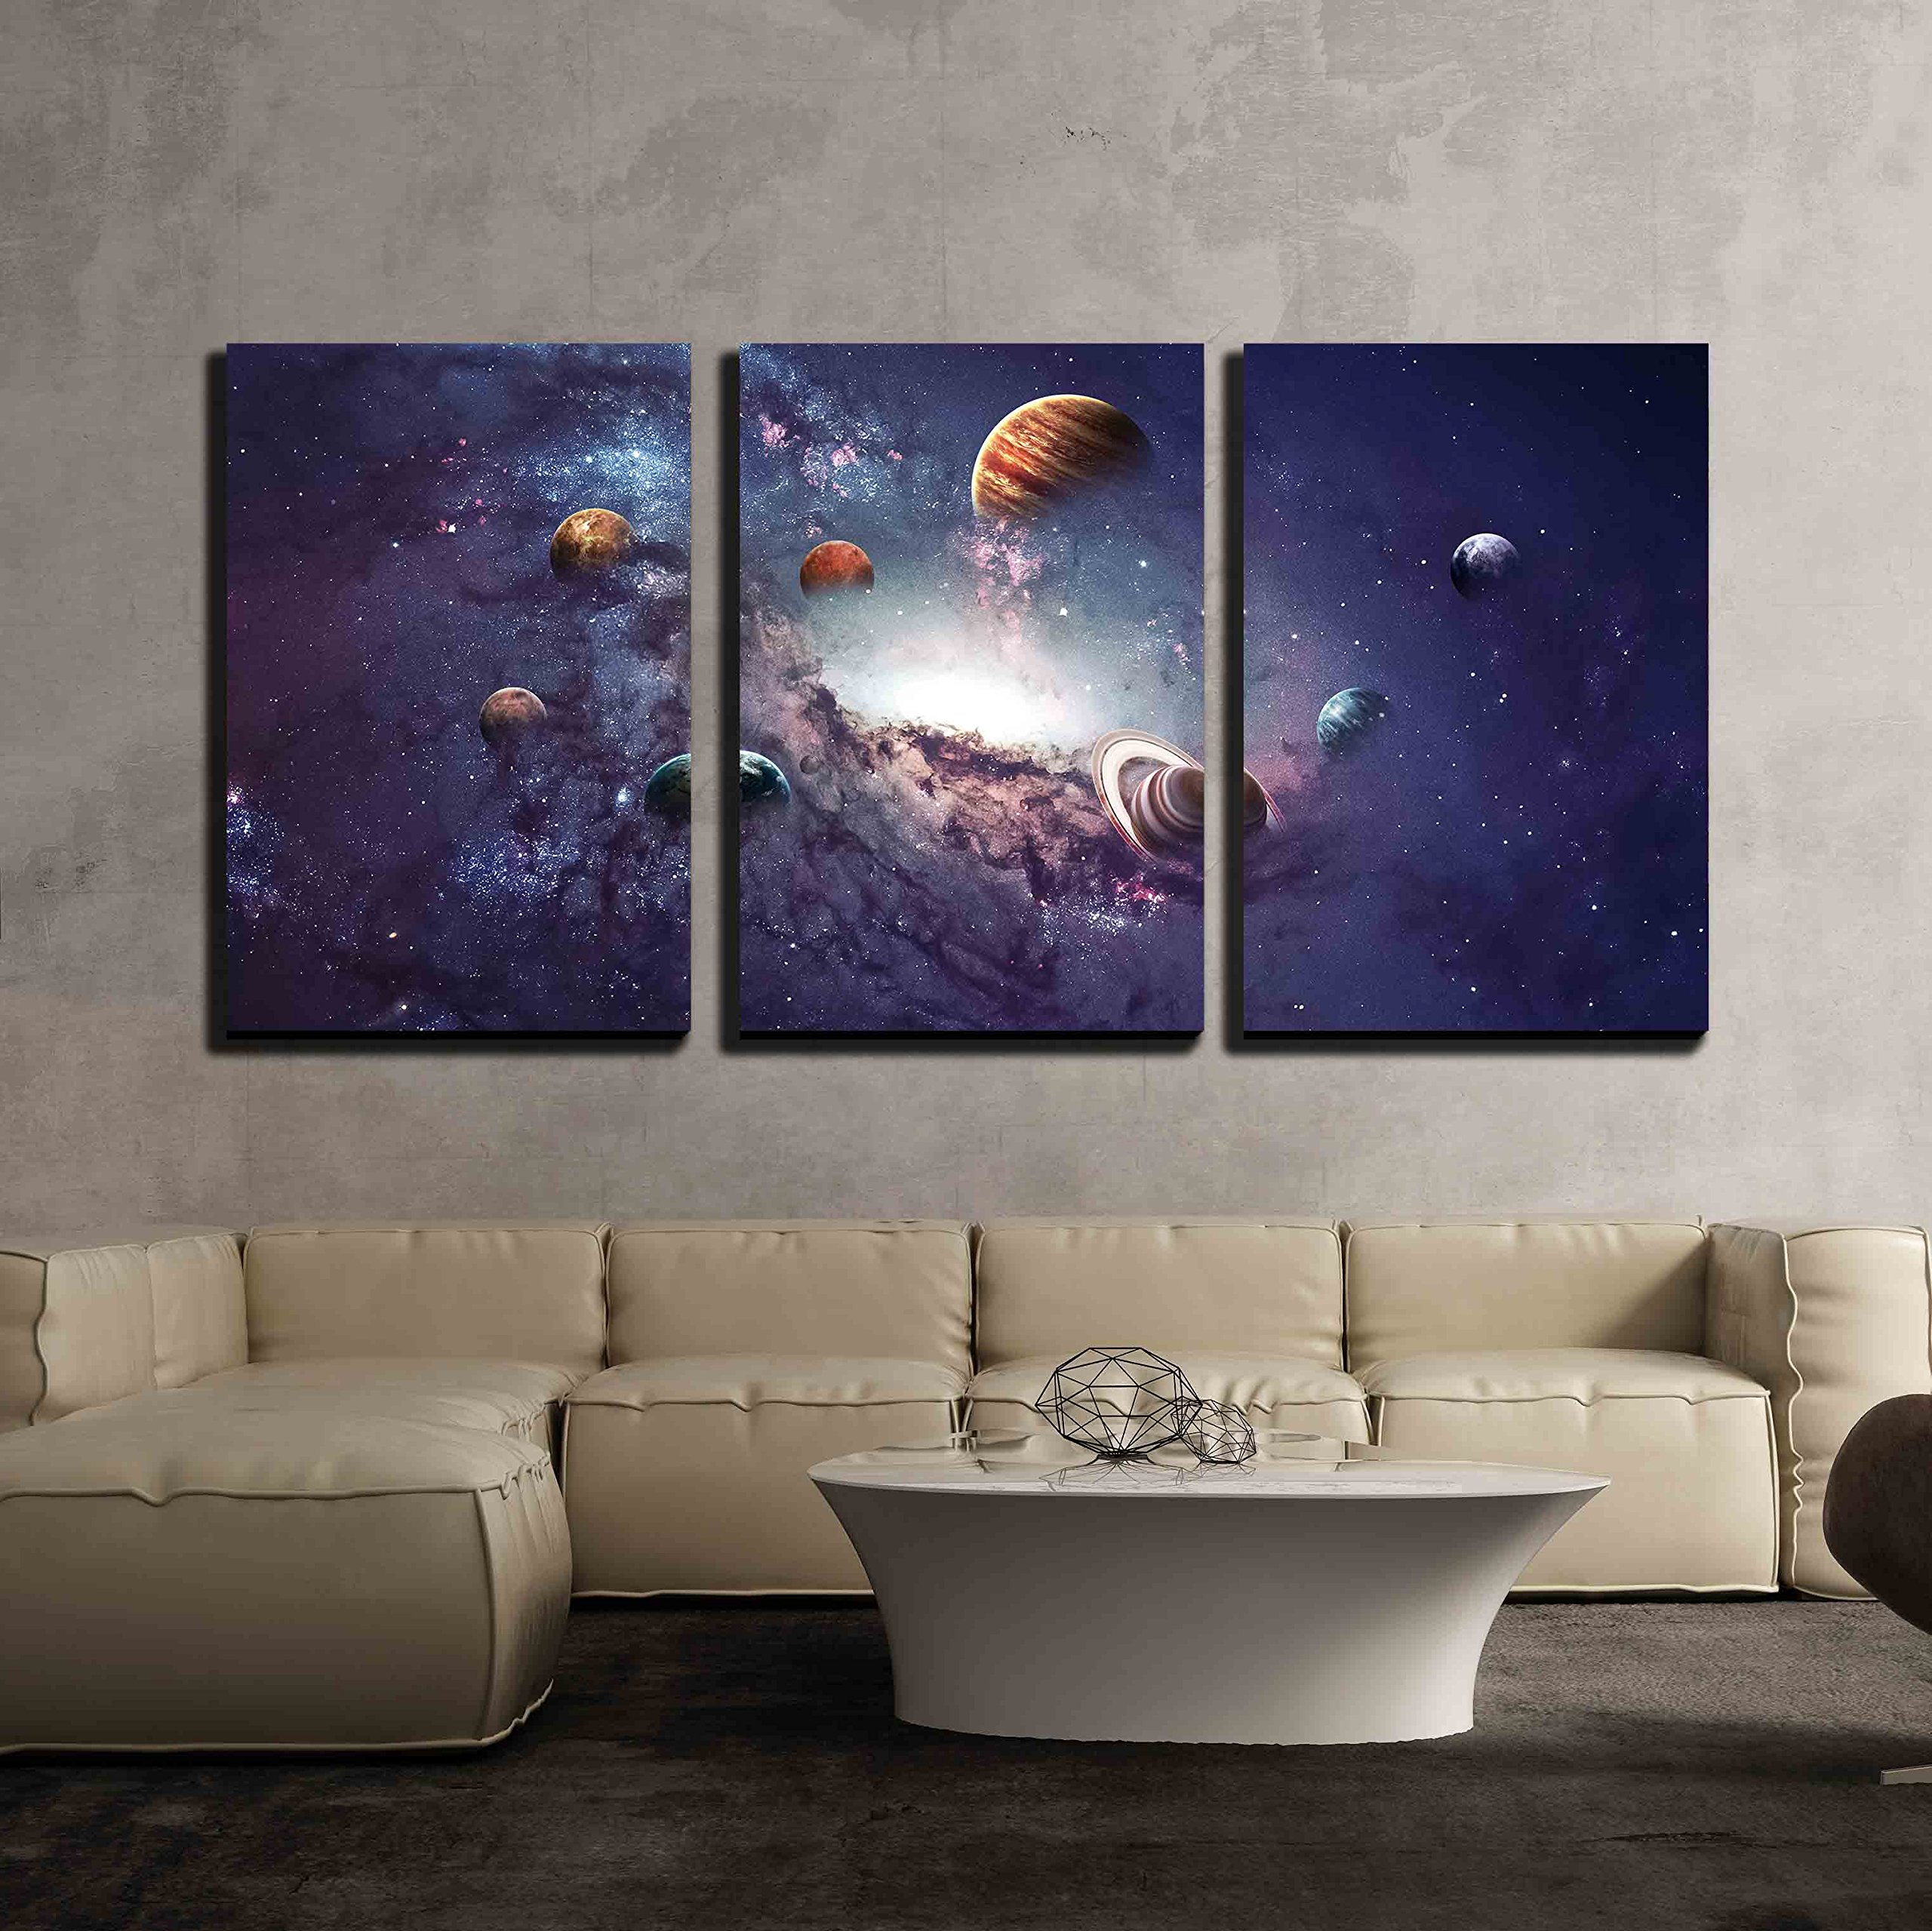 wall26 - 3 Piece Canvas Wall Art - High Resolution Images Presents Creating Planets of the Solar System. - Modern Home Decor Stretched and Framed Ready to Hang - 16''x24''x3 Panels